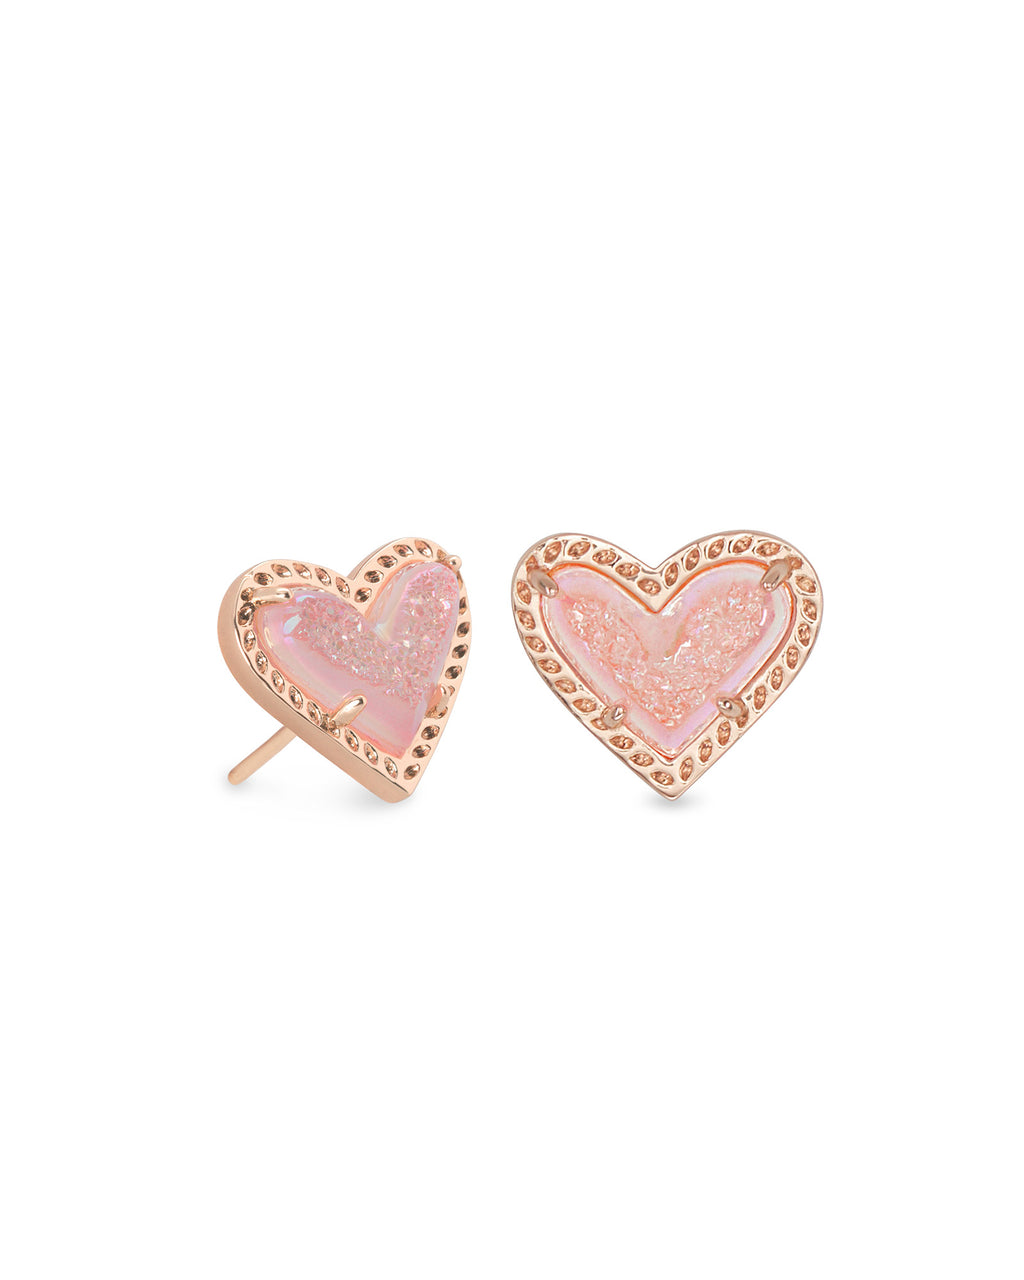 Ari Heart Stud Earrings - Rose Gold